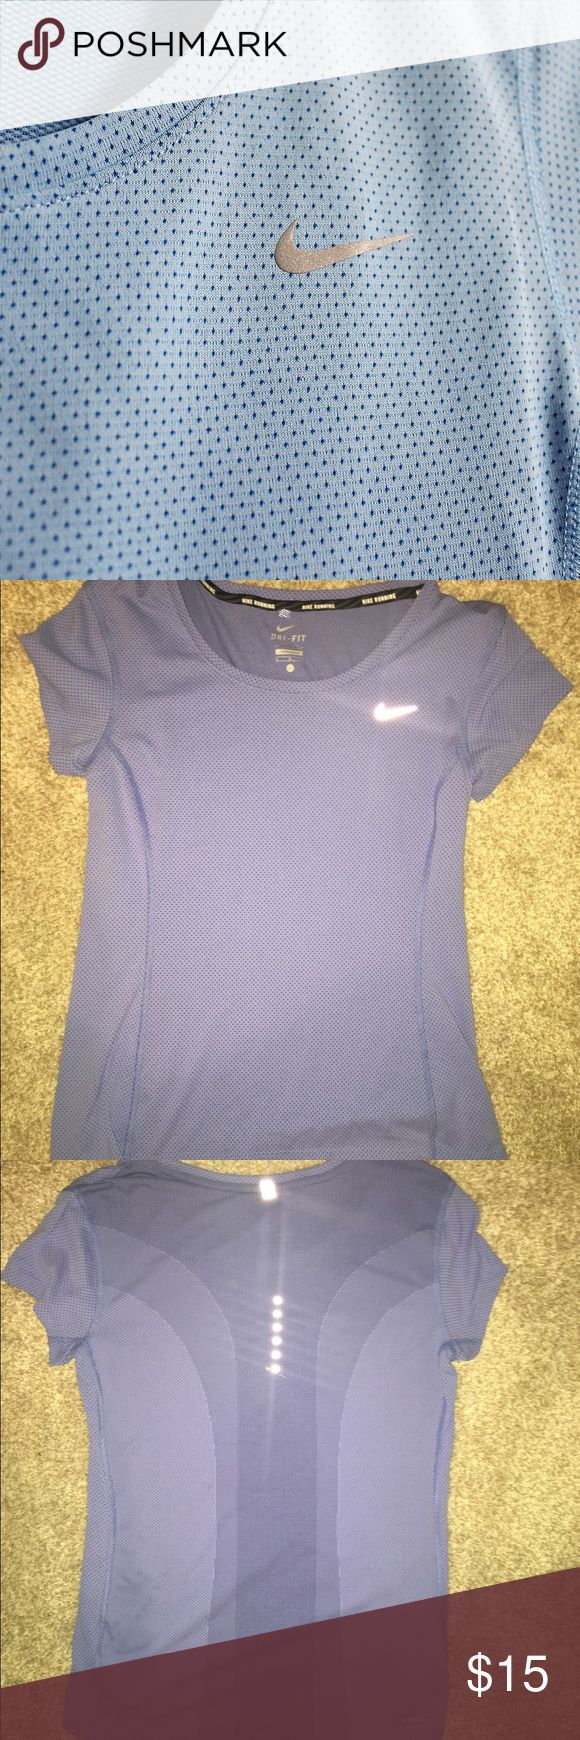 Nike Running Miller Shirt This is a unique dry fit shirt! The pattern is so pretty and the detail on the back is gorgeous! I never wore this shirt. Please make offers! Nike Tops Tees - Short Sleeve